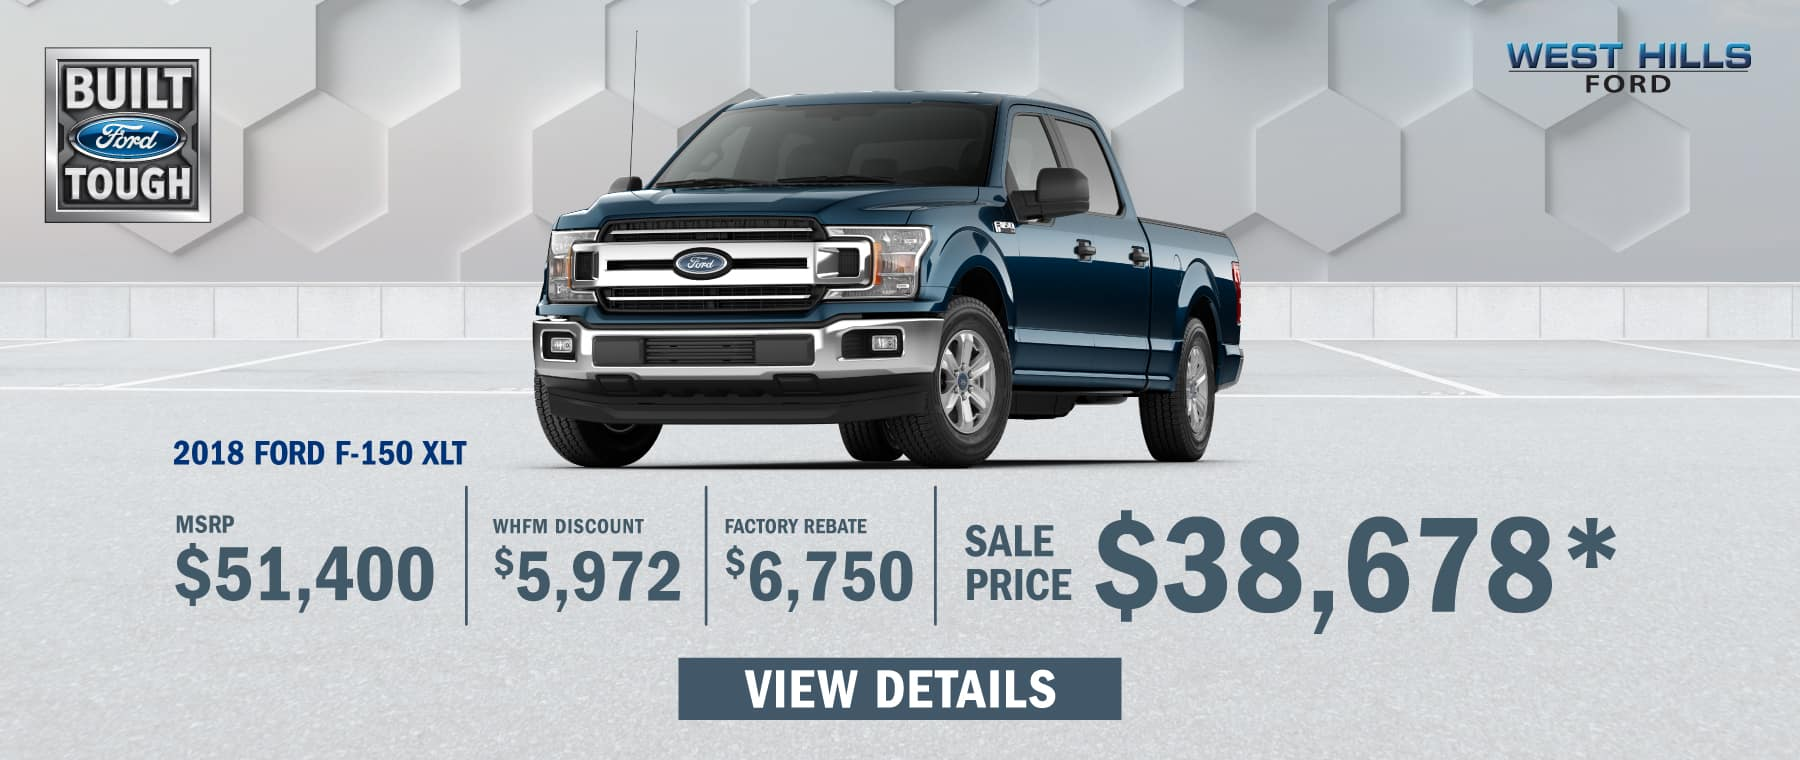 2018 Ford F-150 XLT (FEATURED VEHICLE)